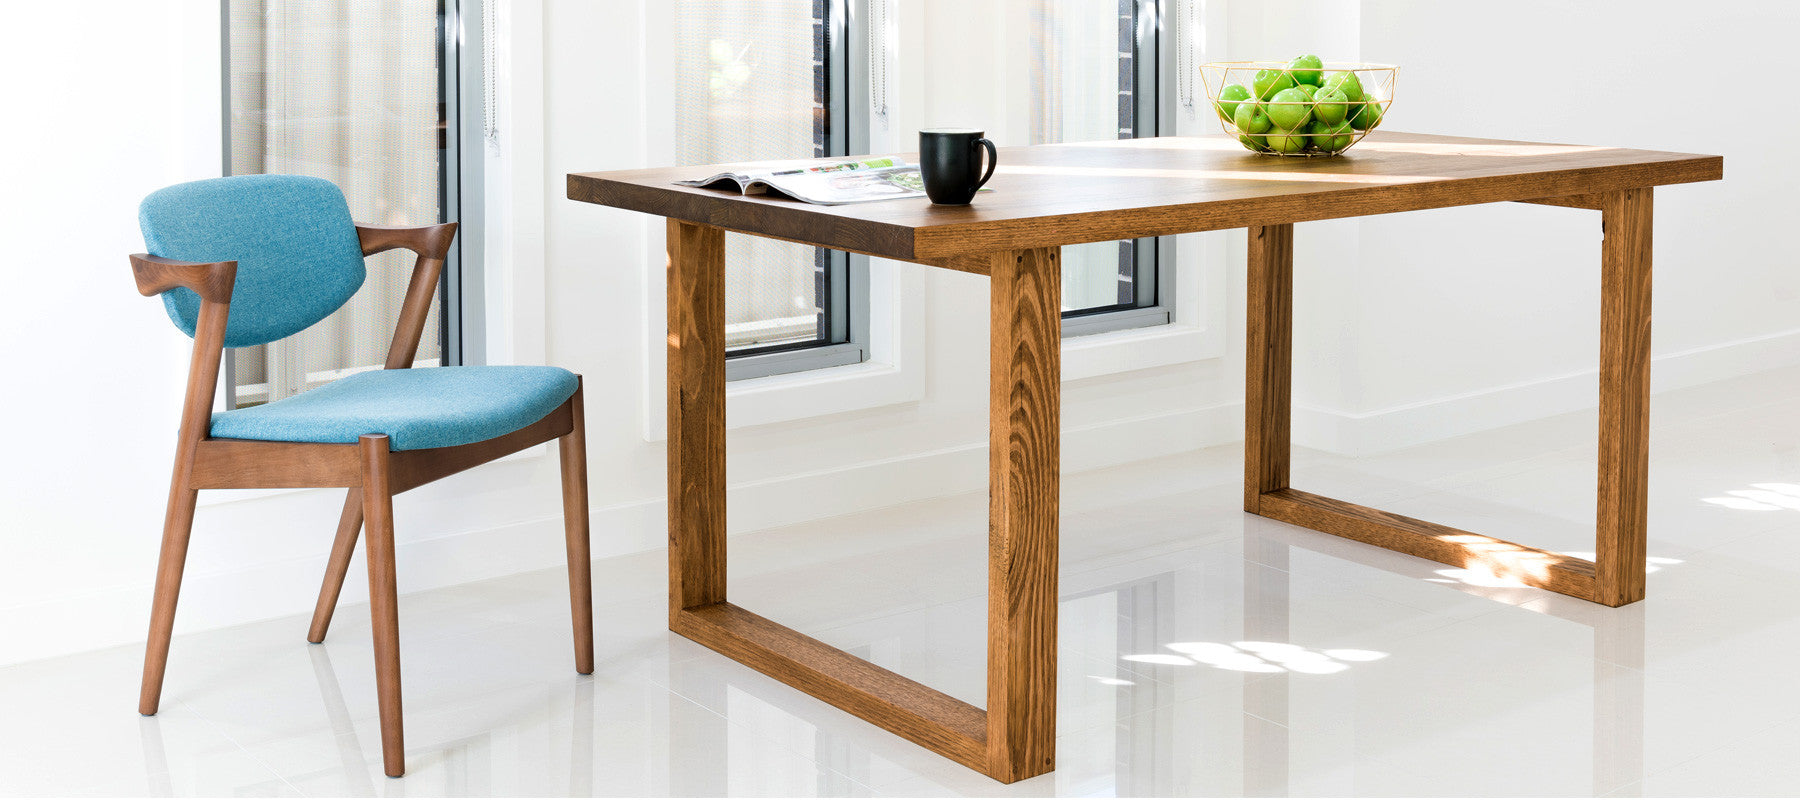 Uchi solid timber dining table